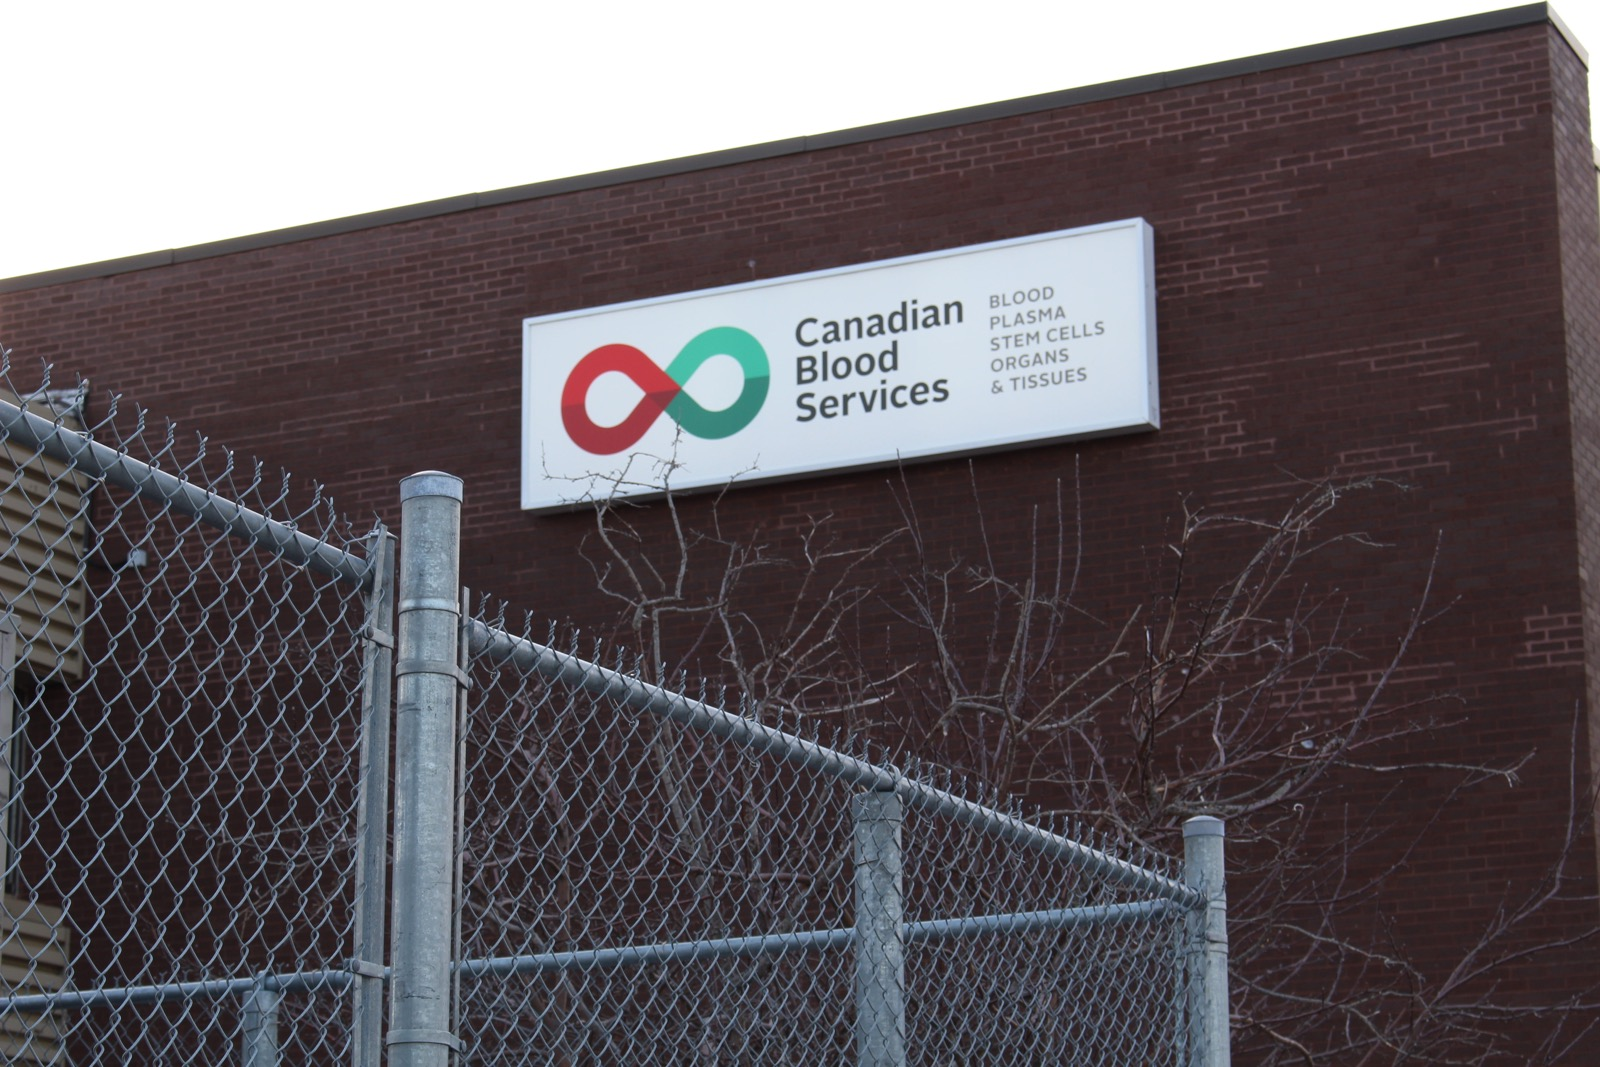 Canadian Blood Services Building